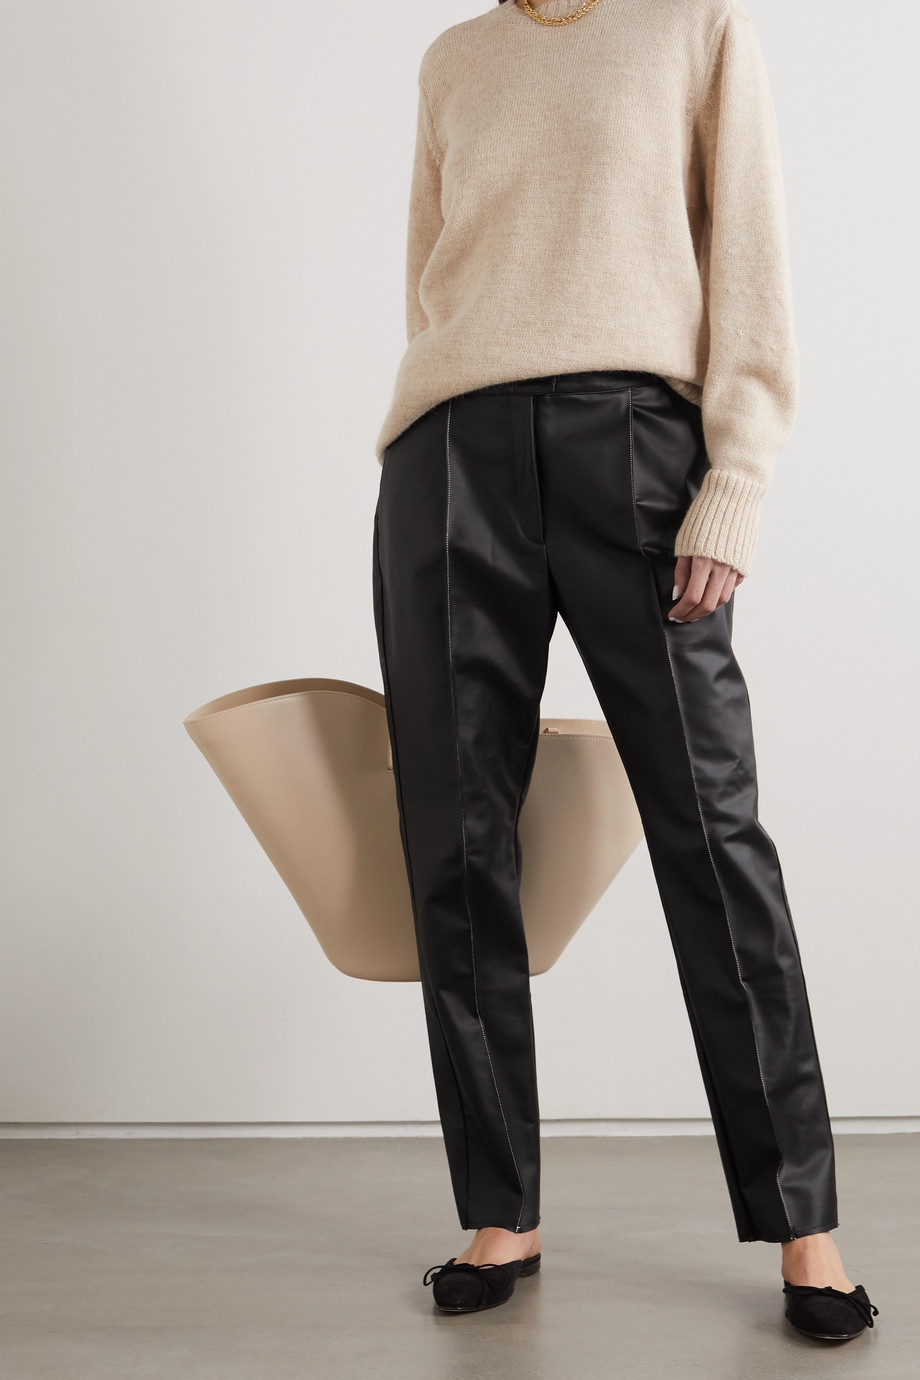 CAES + NET SUSTAIN faux leather straight-leg pants